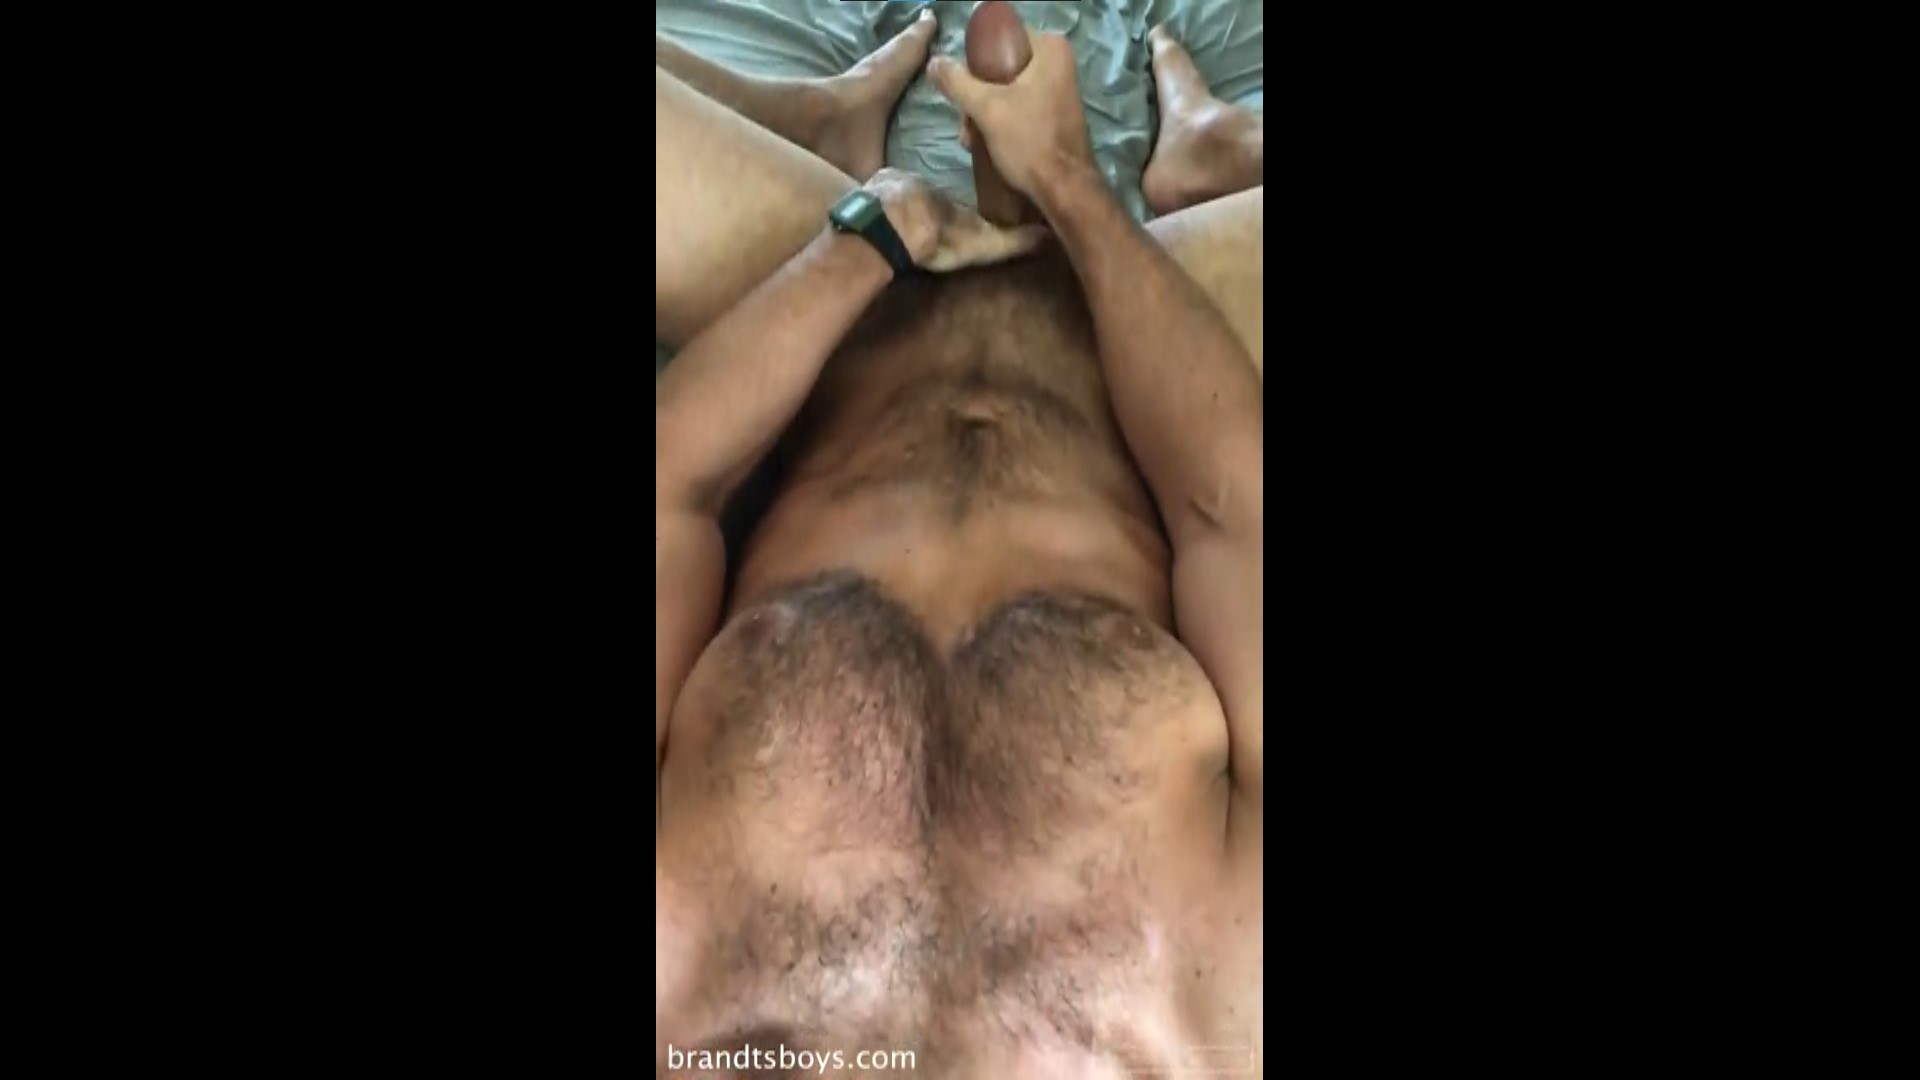 Chase being face fucked and jerking off - Chasexbrandt